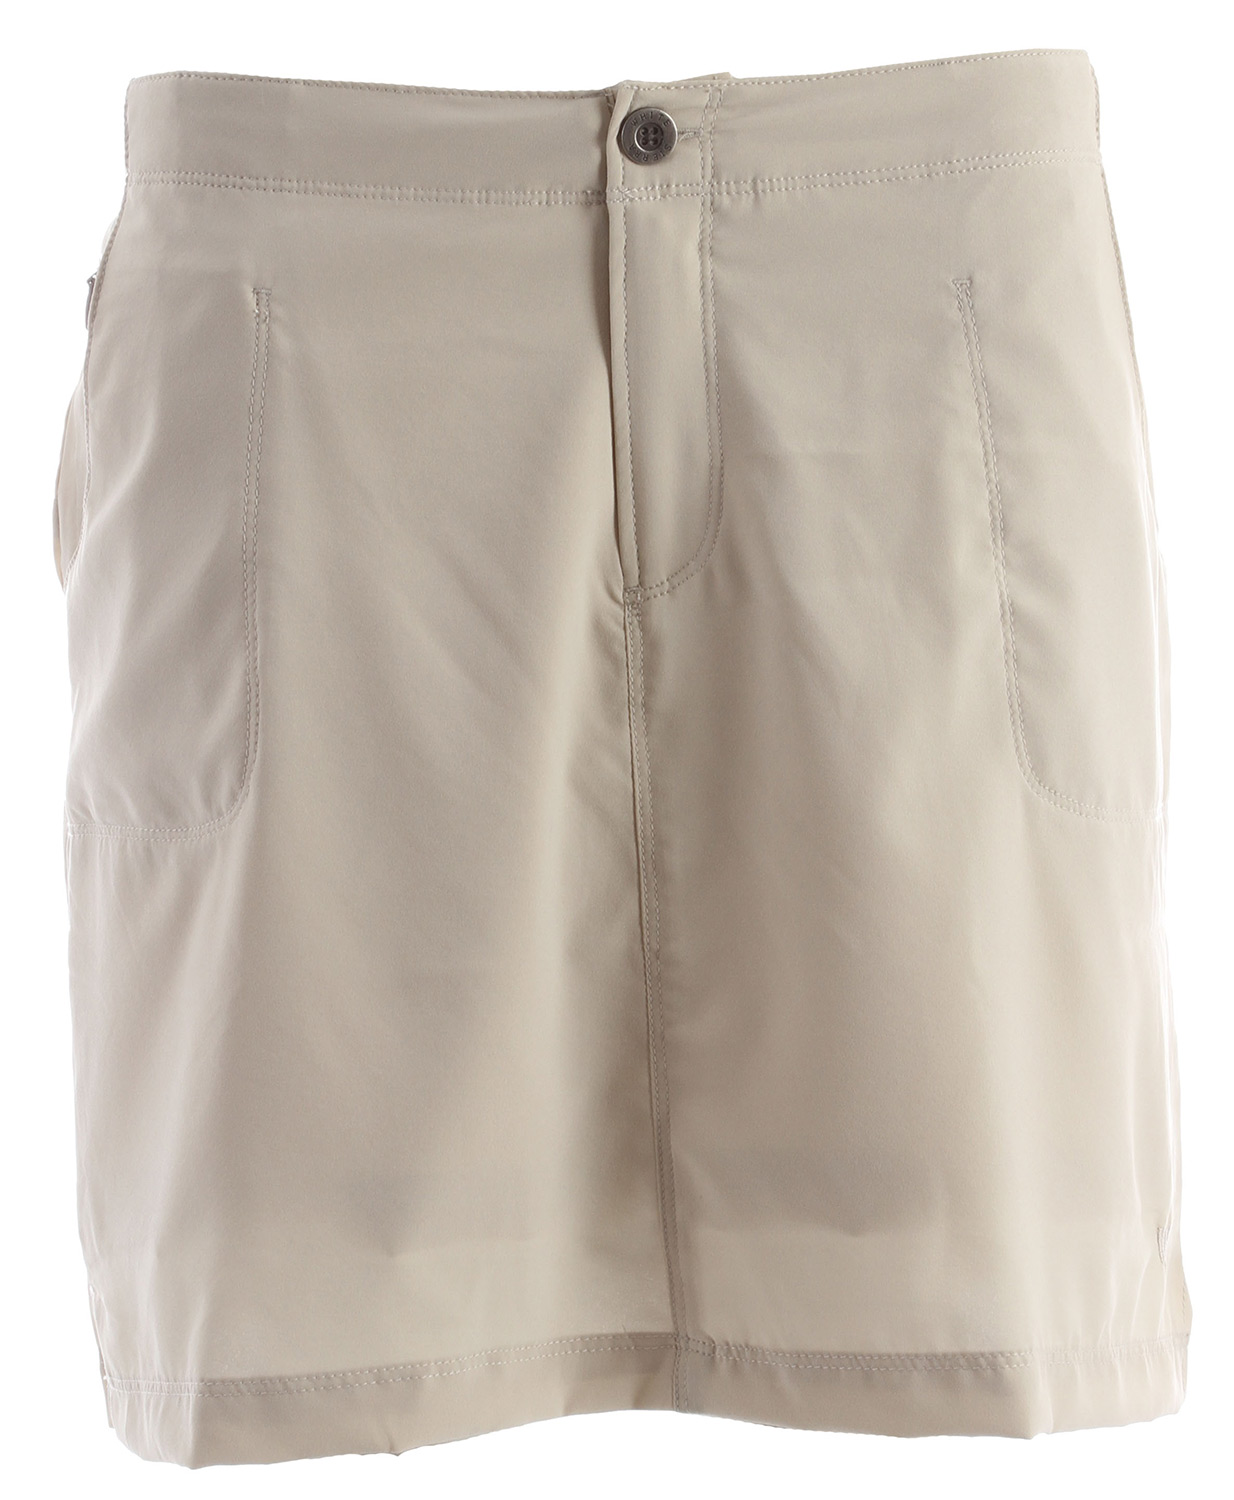 "The West Loop Trail Skort is both practical and feminine to take you from place to place. The size zip pocket will help hold your key, lip balm, cash, cards, and any other necessities.Key Features of the White Sierra West Loop Trail Skort: 92% polyester 8% elastane woven Sun protection fabric Comfort fit back elastic Attached interior shorts Zip secure hip pocket Skort length: 17"" - $26.95"